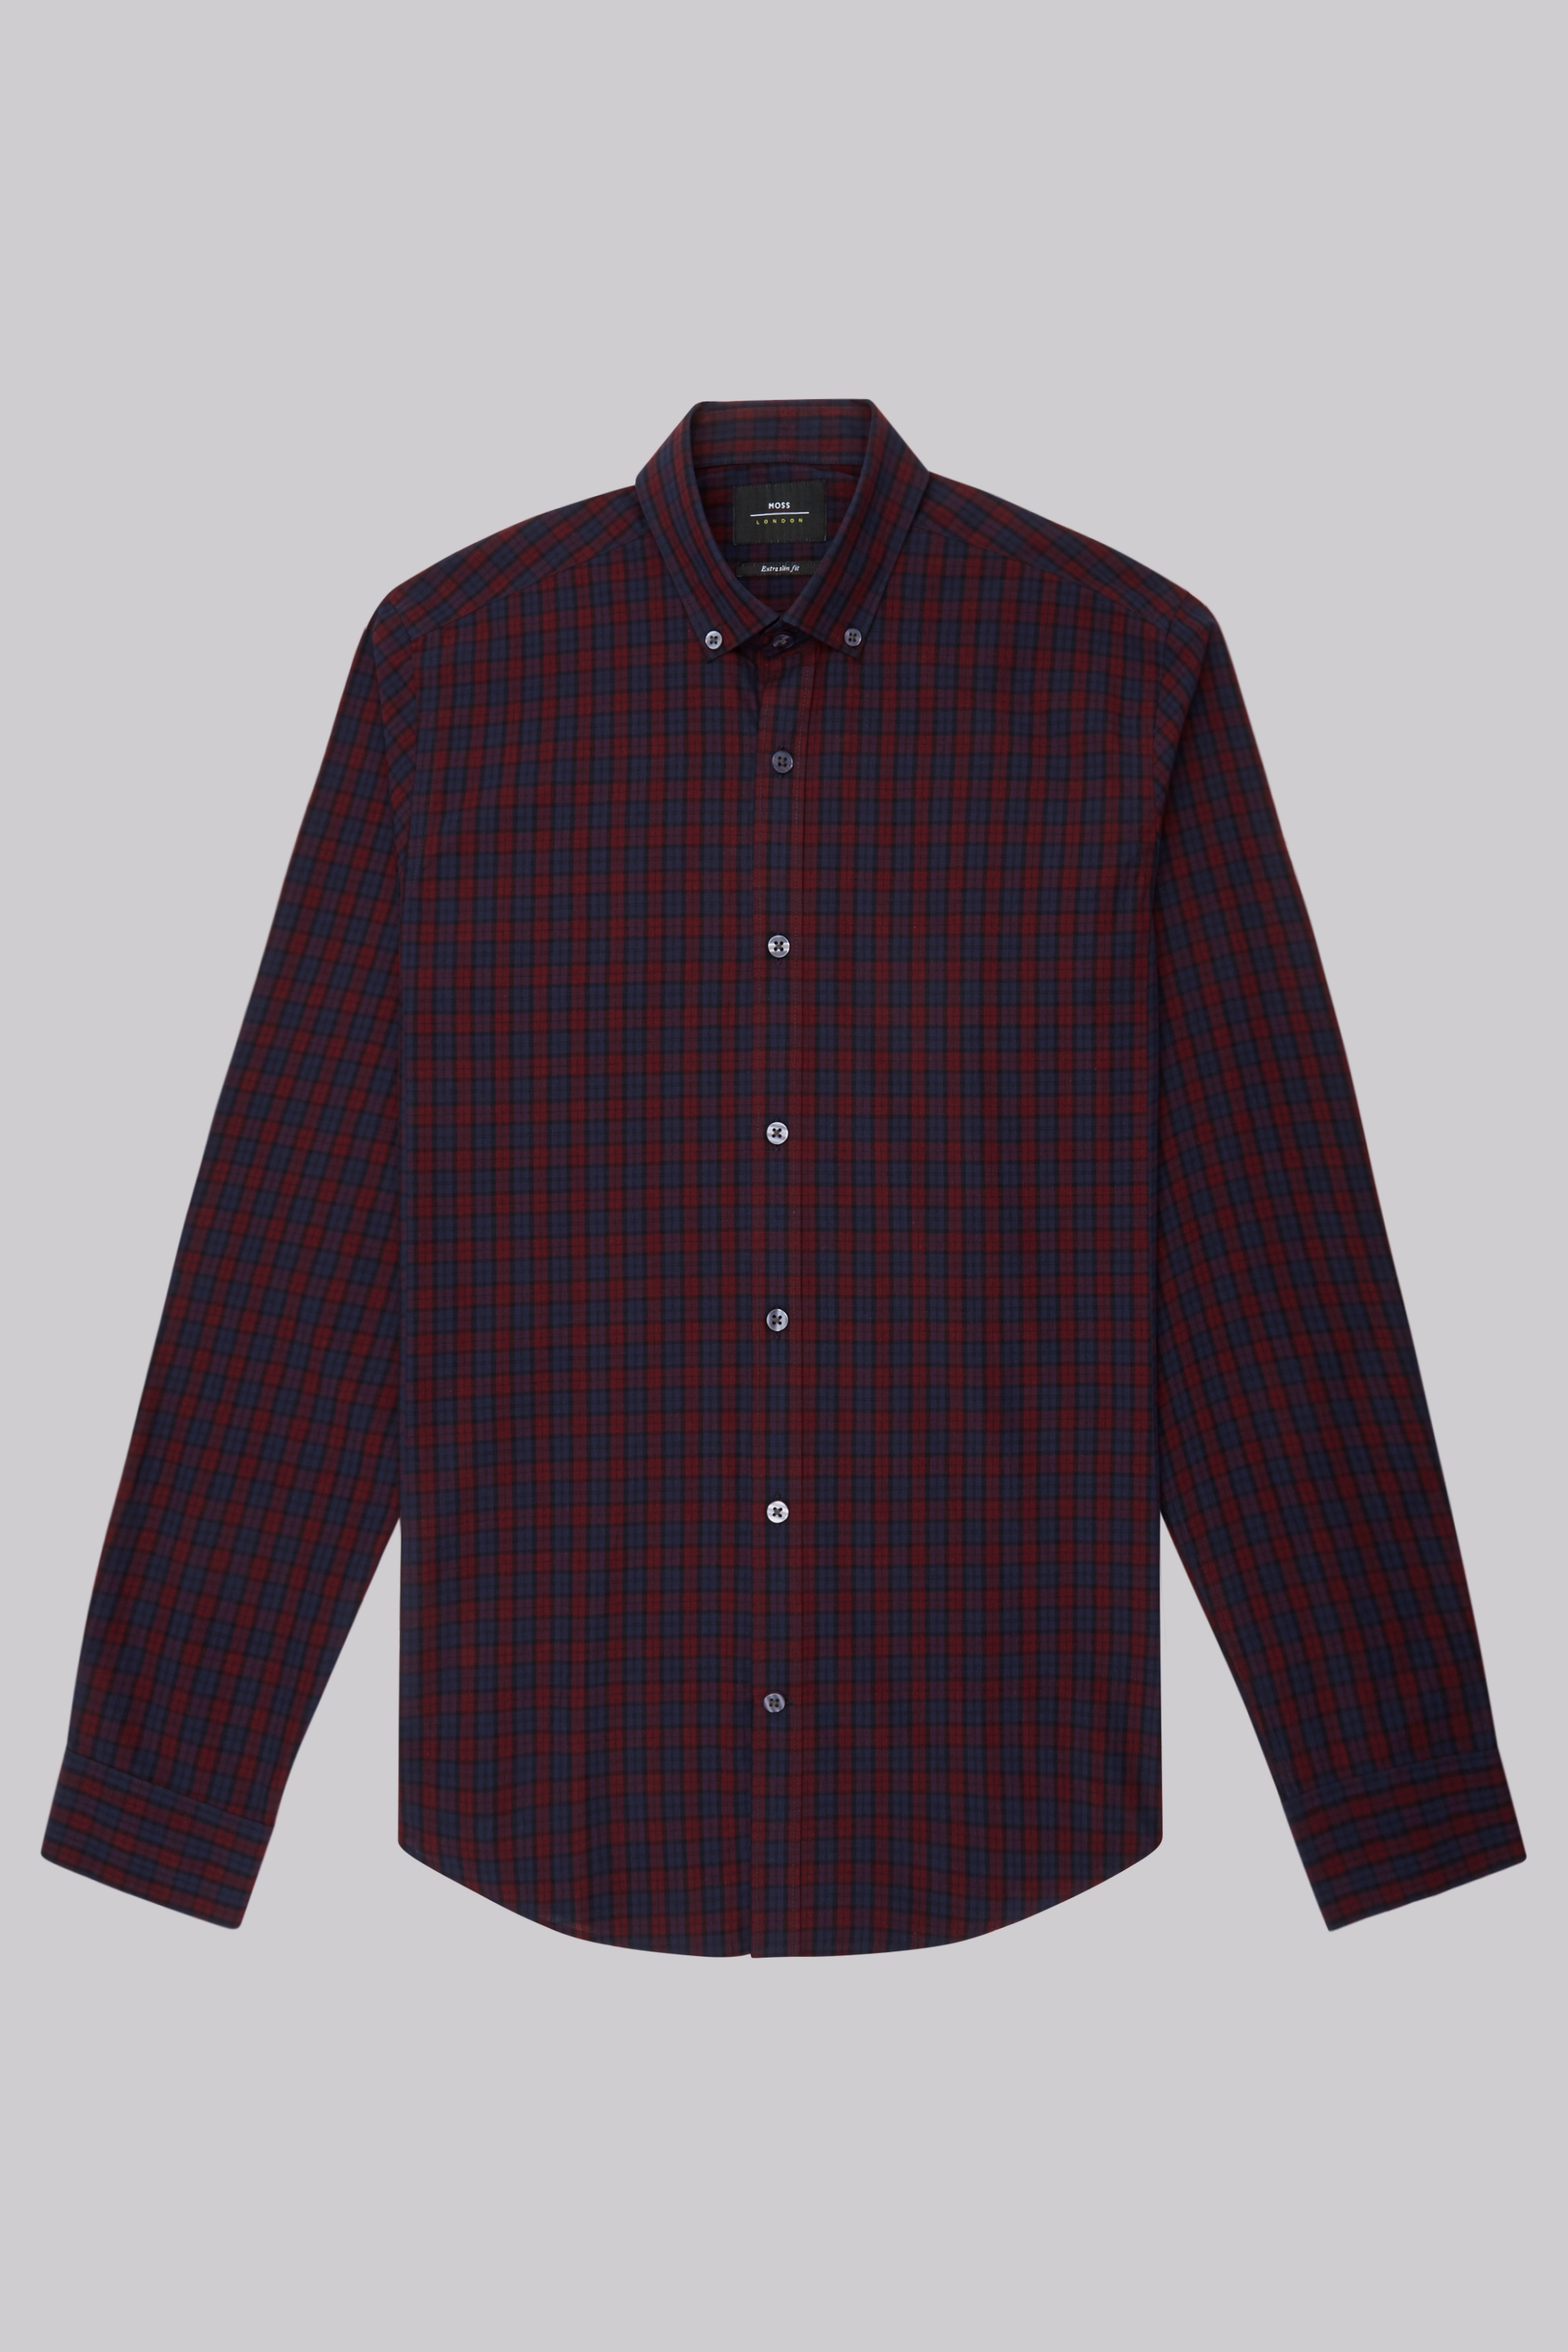 Moss Bros Moss London Extra Slim Fit Wine and Navy Check Button Down Casual Shirt